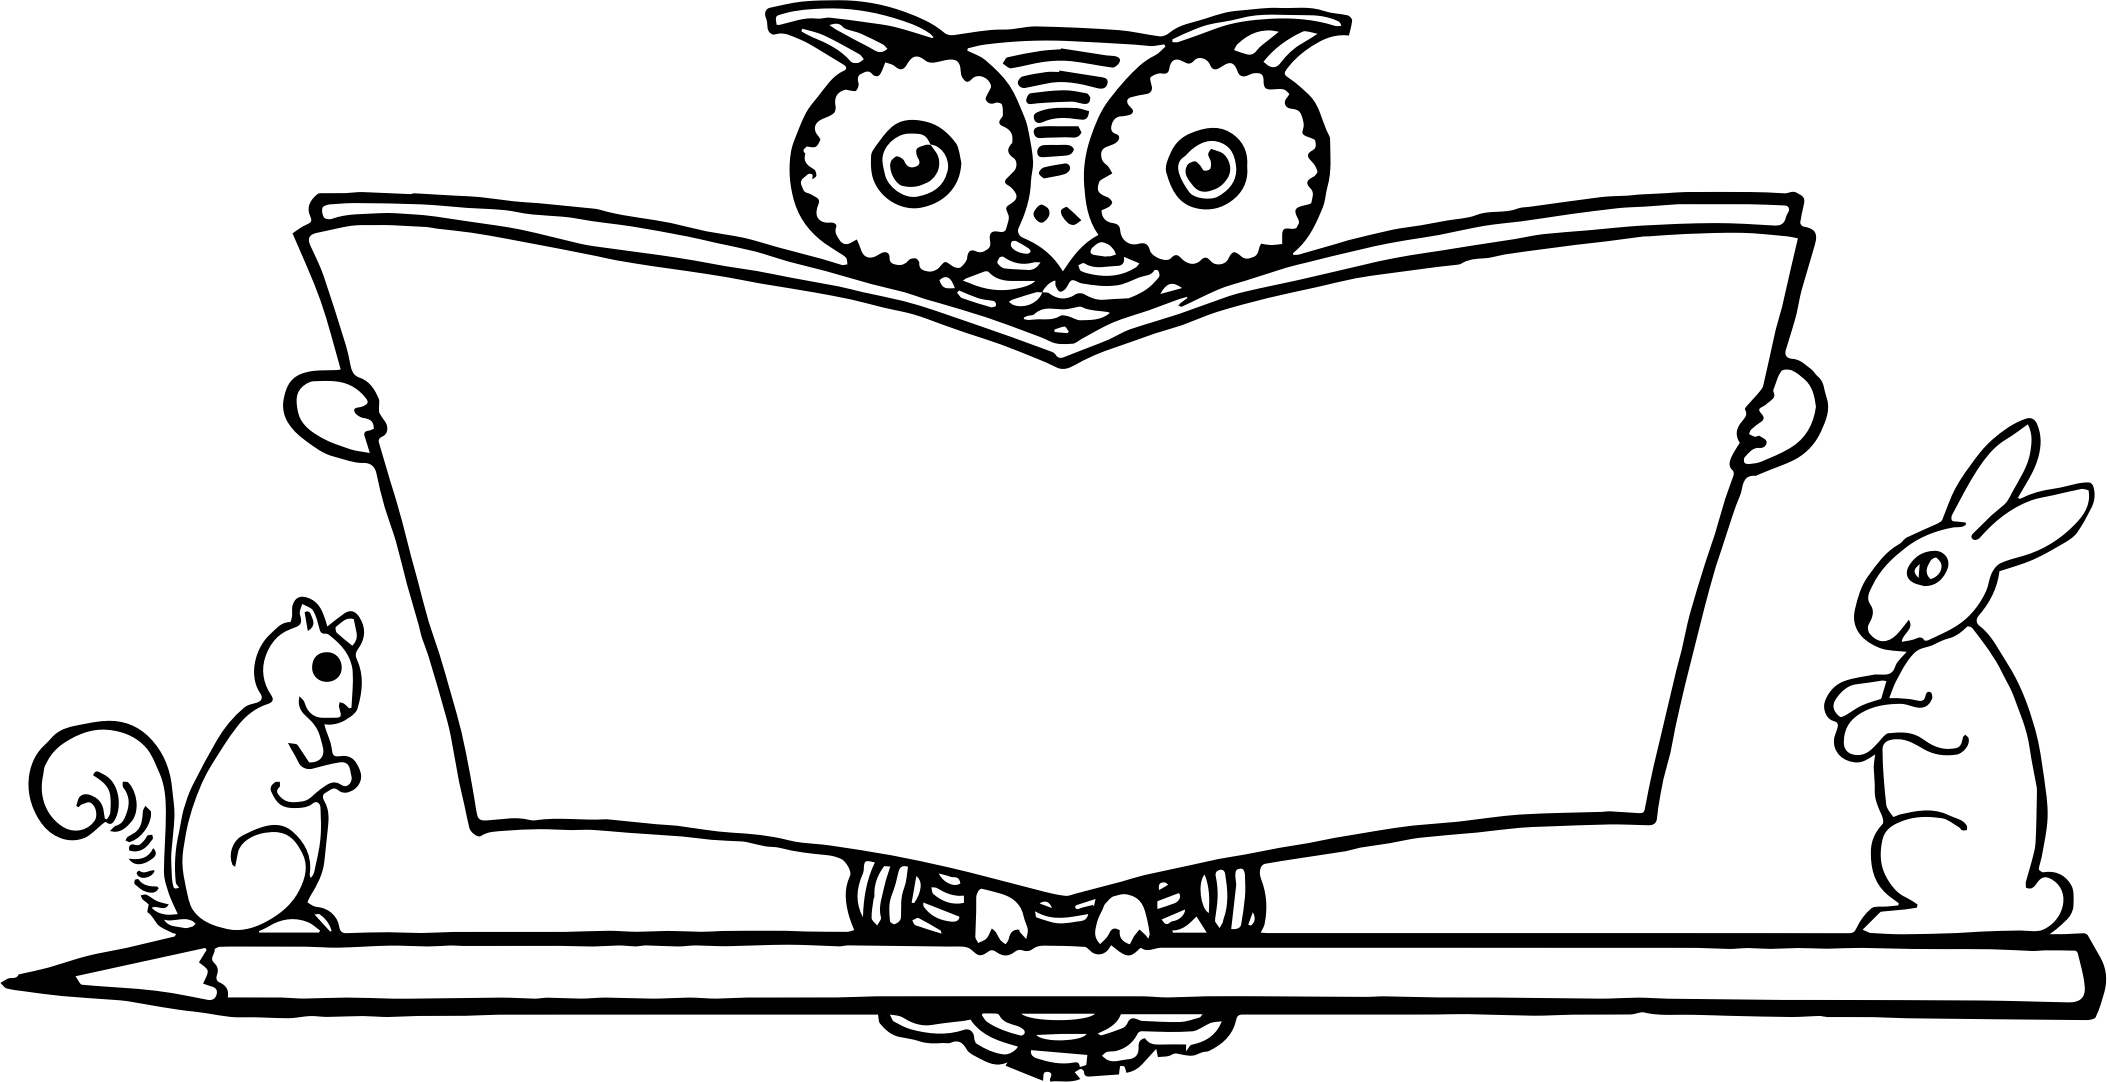 Owl book black and white clipart